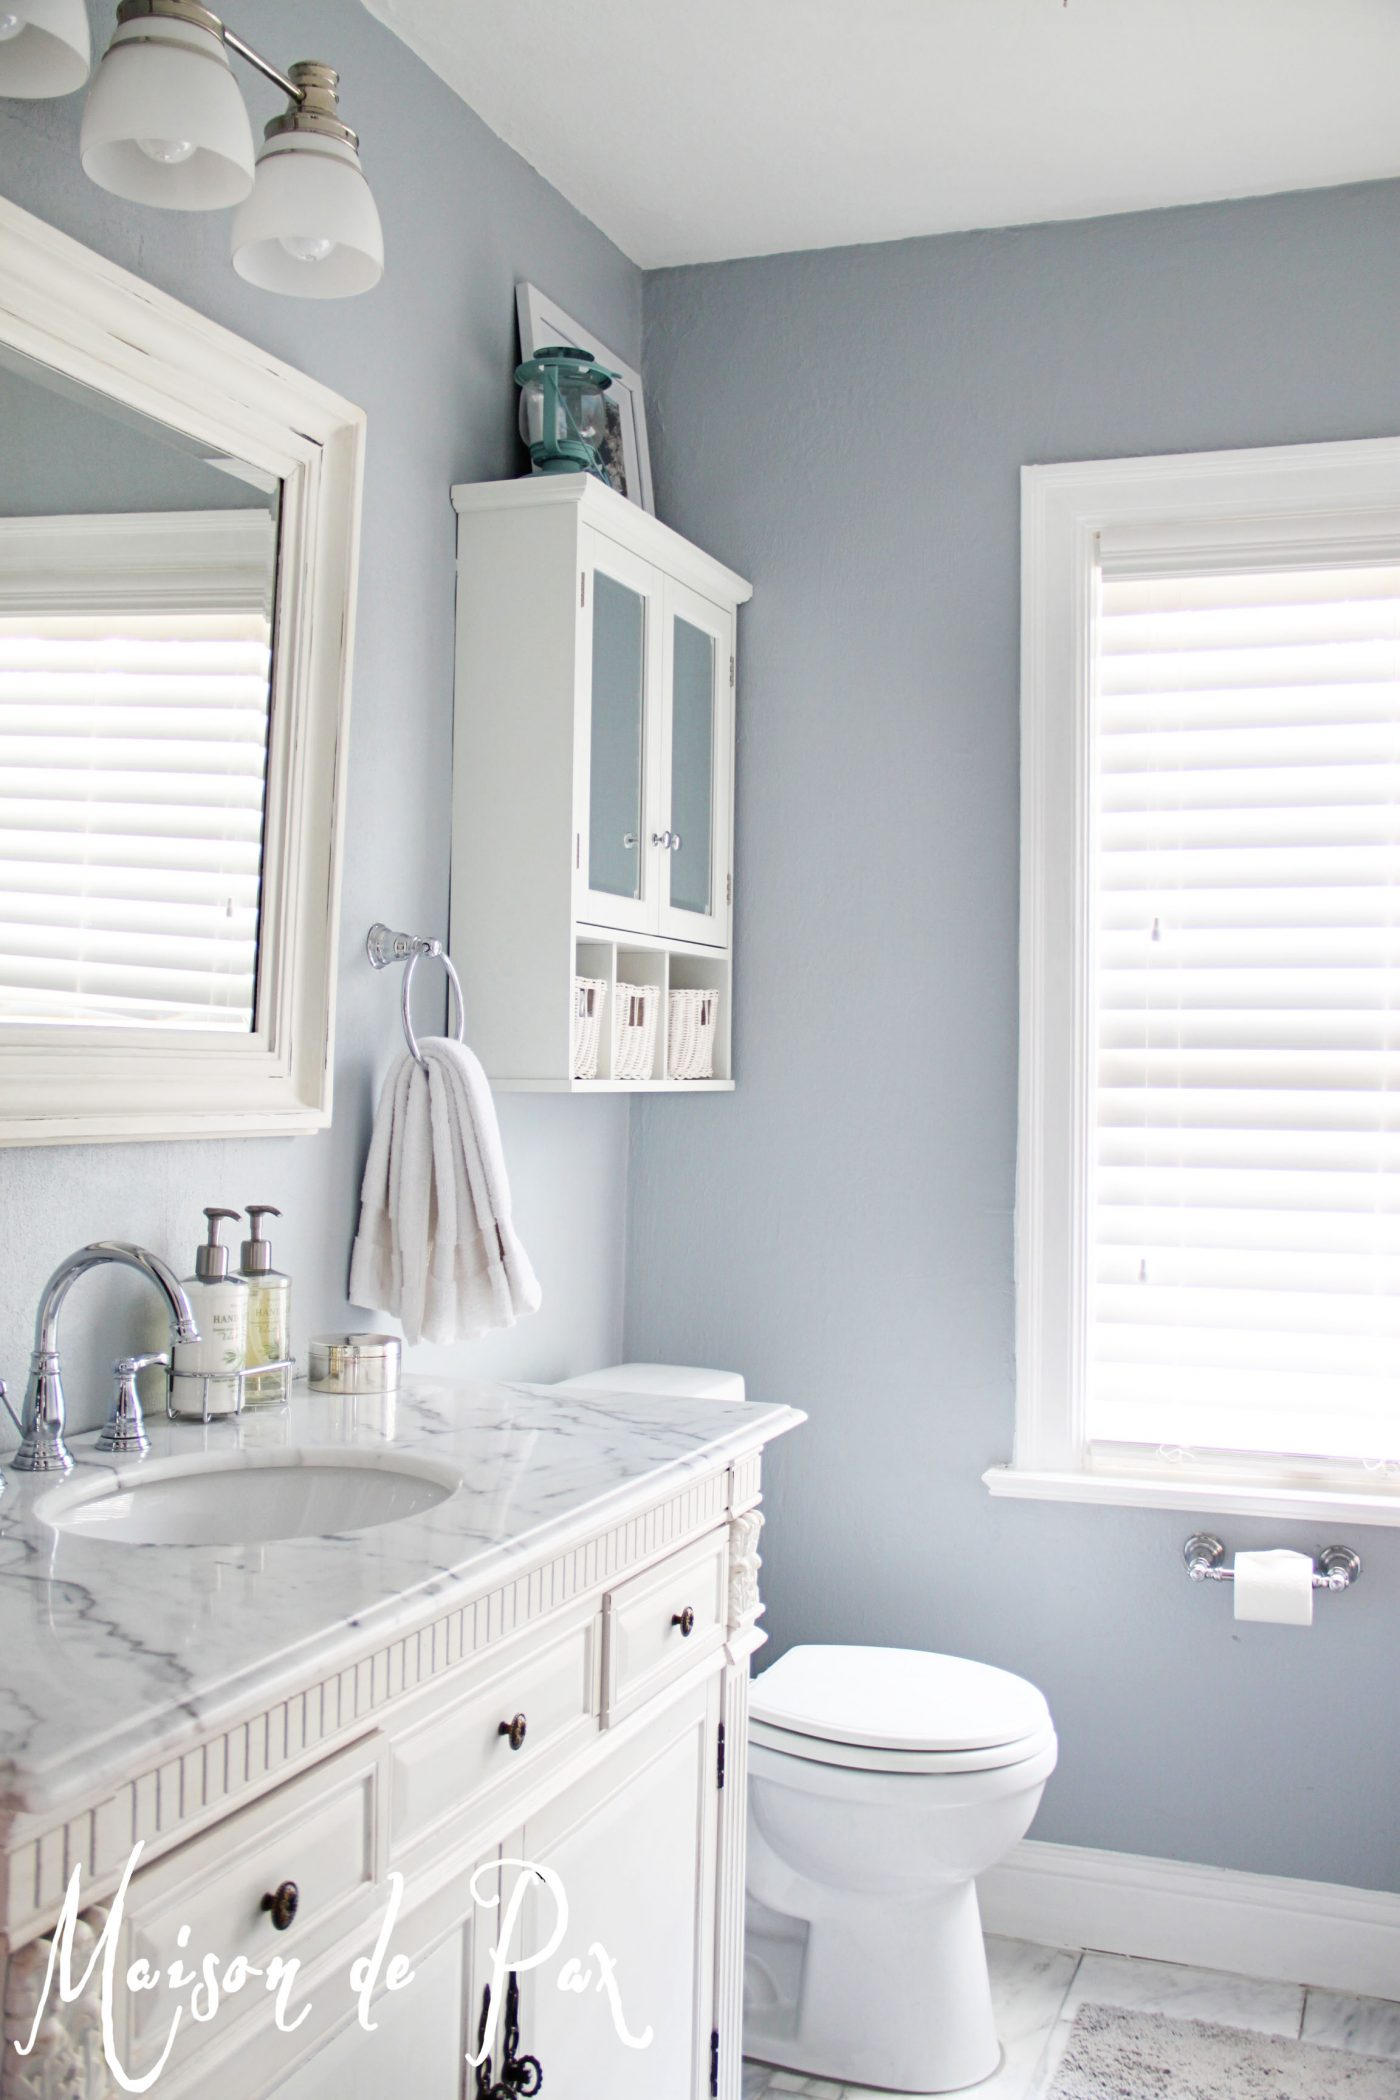 How to design a small bathroom for Good bathroom ideas